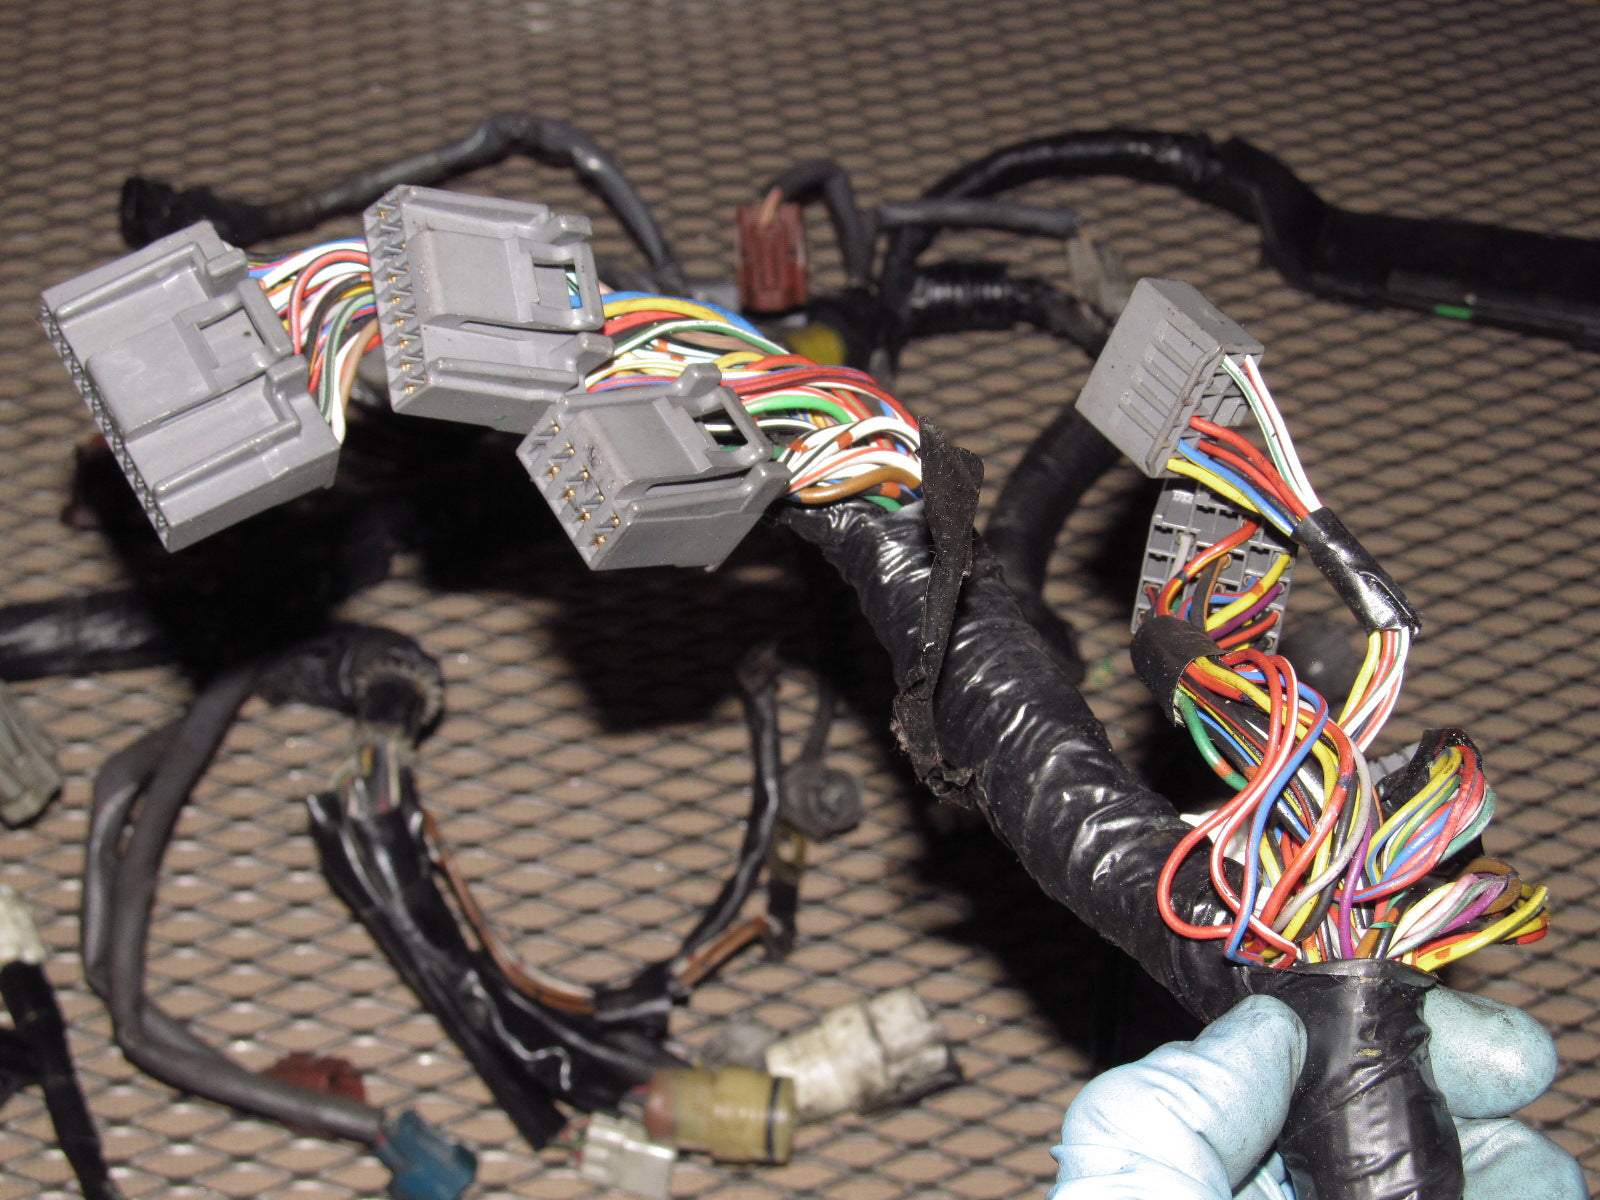 ... 89 90 91 92 Toyota Supra OEM Engine Wiring Harness - 7MGE A/T ...